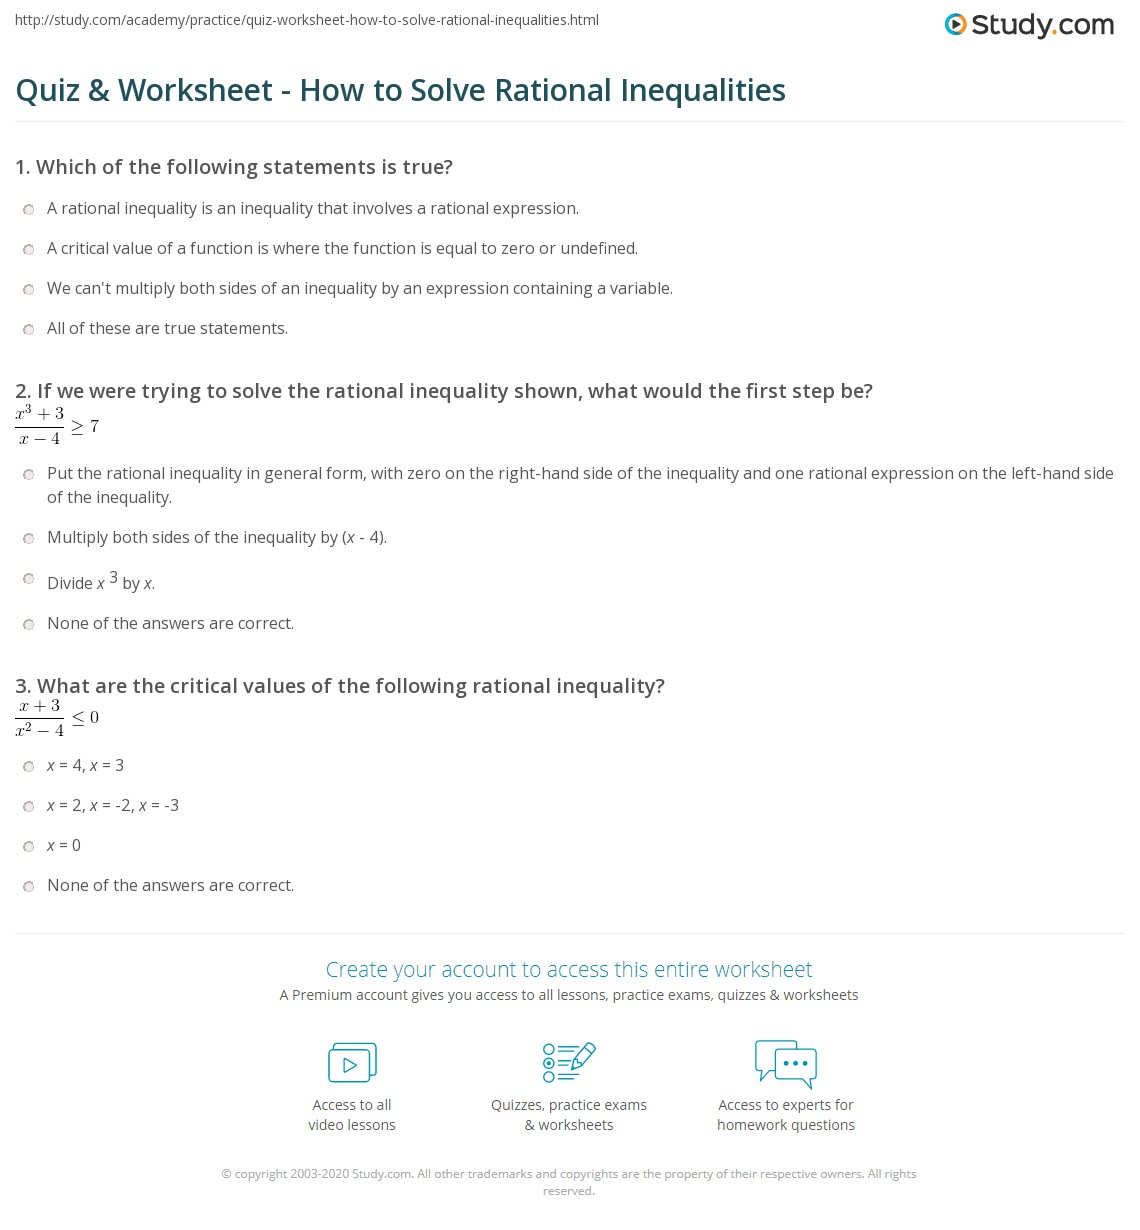 hight resolution of Quiz \u0026 Worksheet - How to Solve Rational Inequalities   Study.com